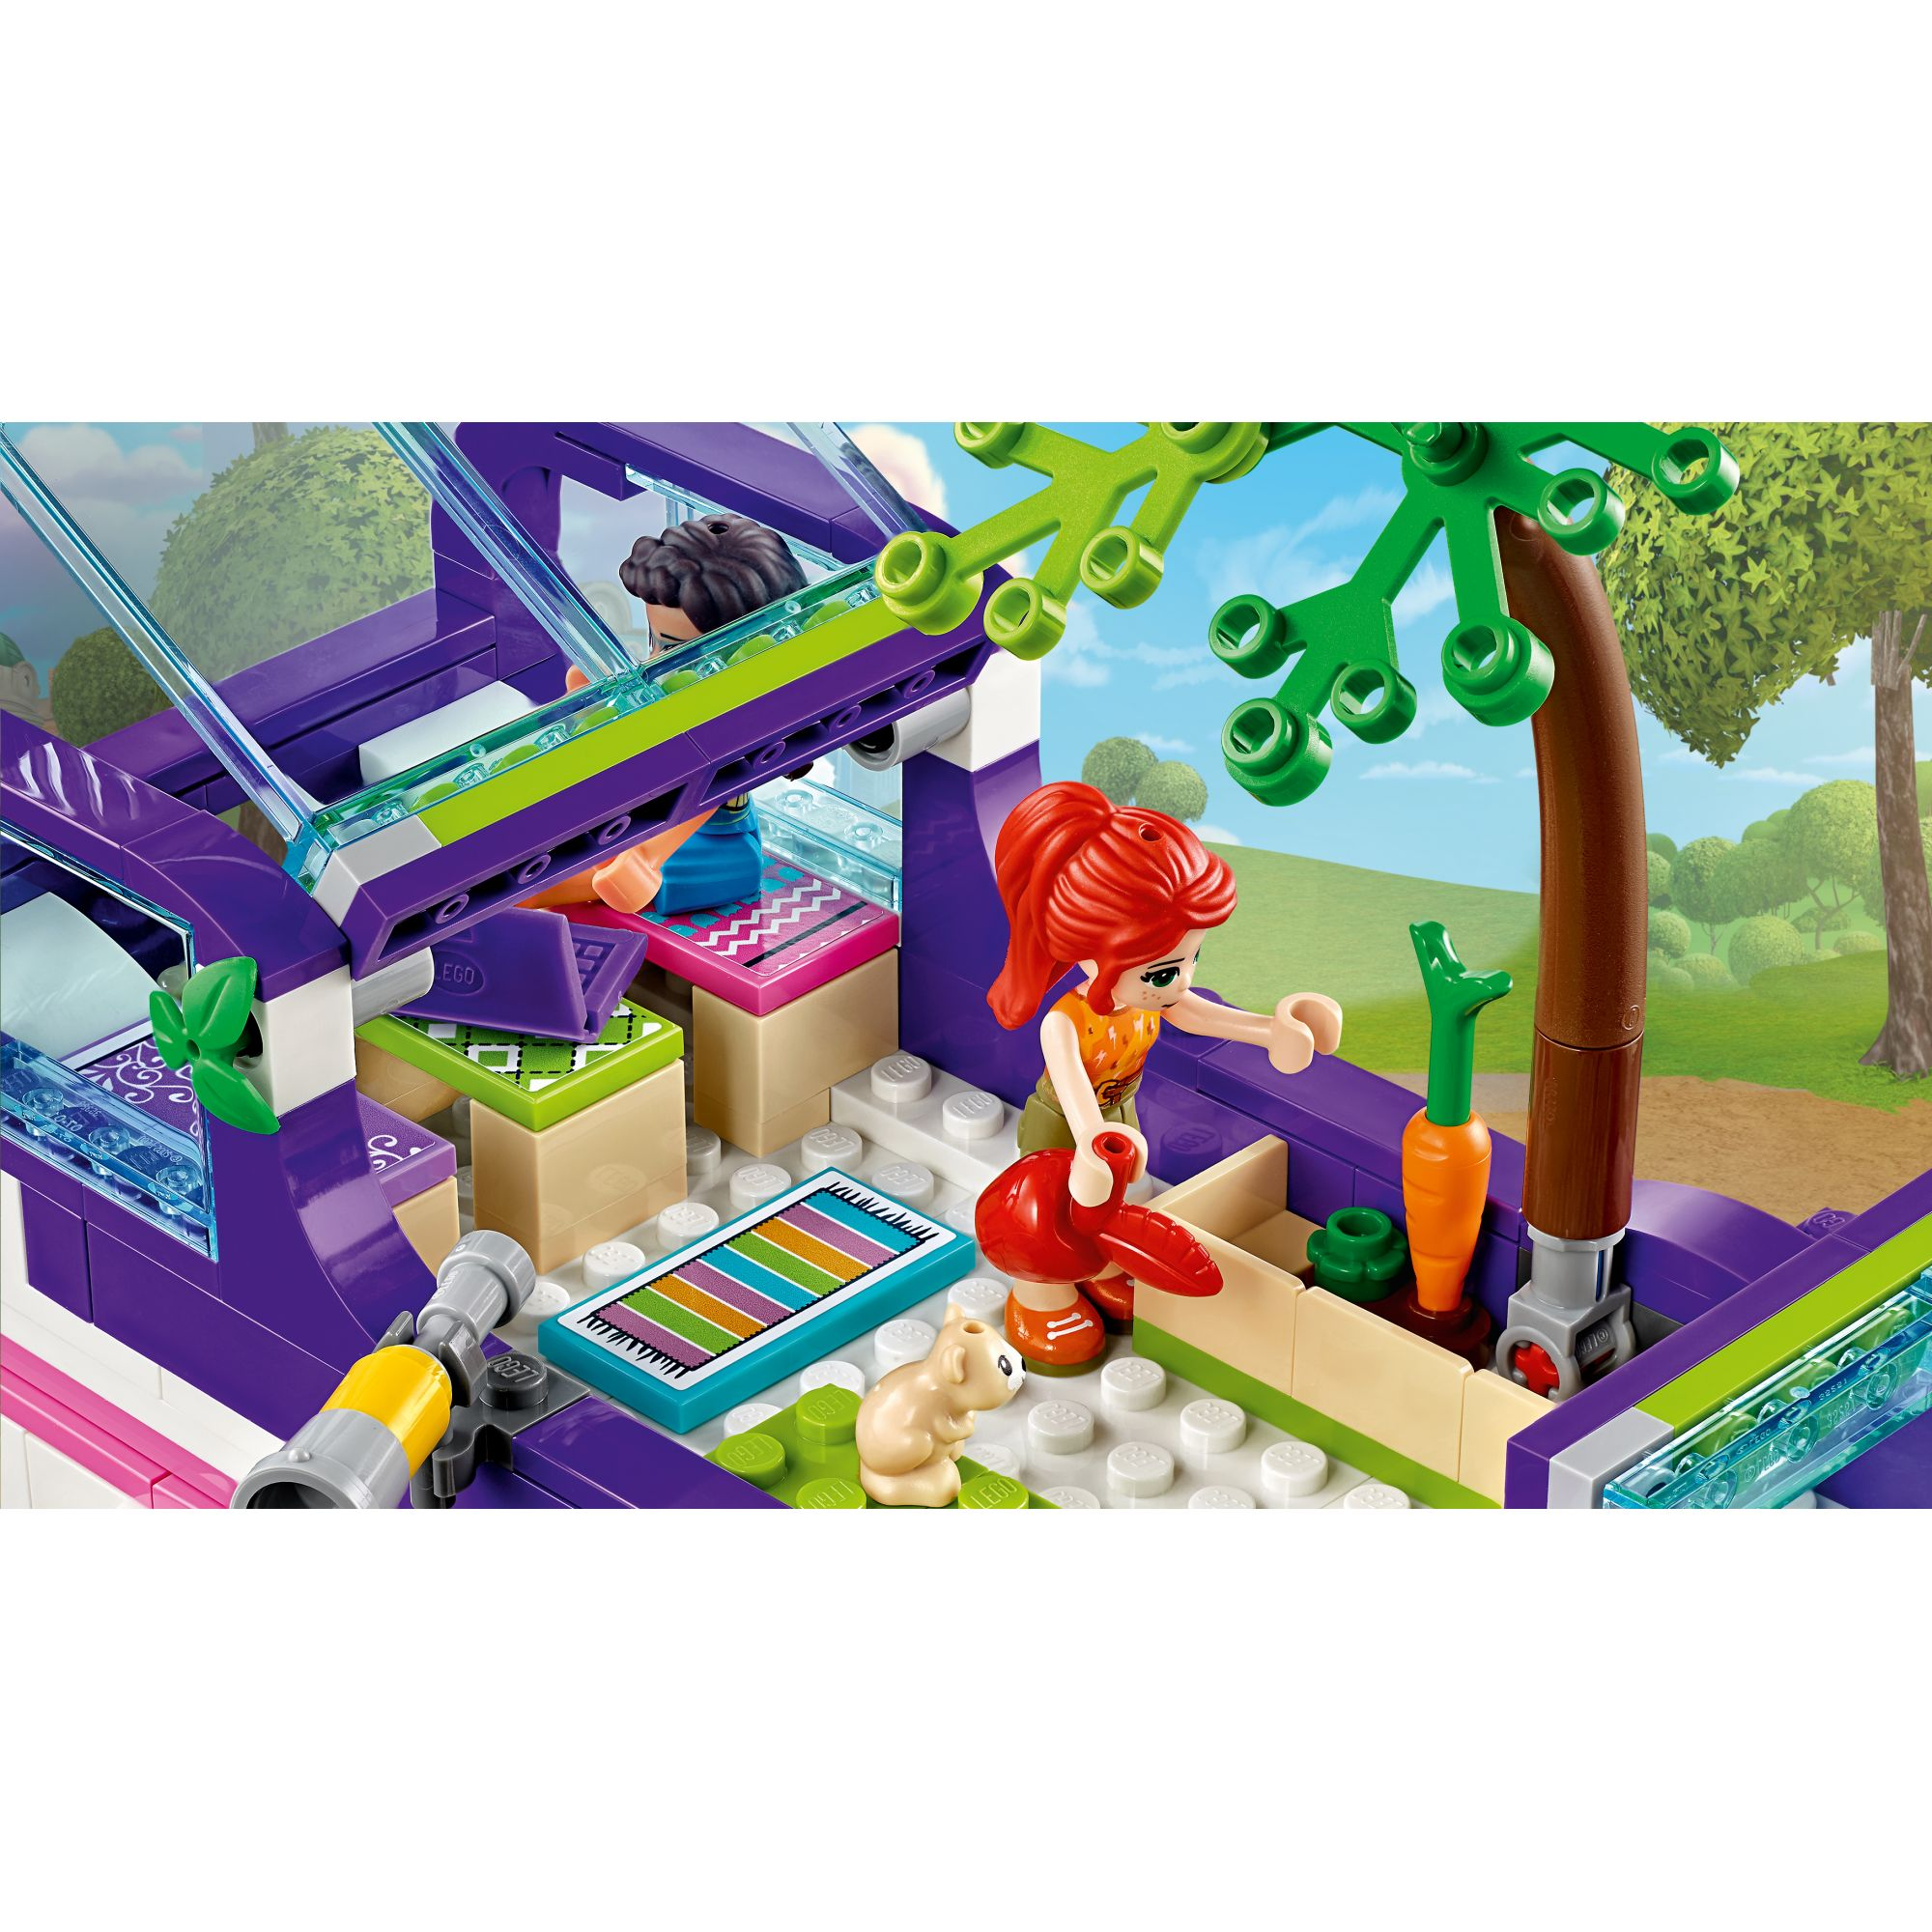 LEGO Friends Il bus dell'amicizia - 41395    LEGO FRIENDS